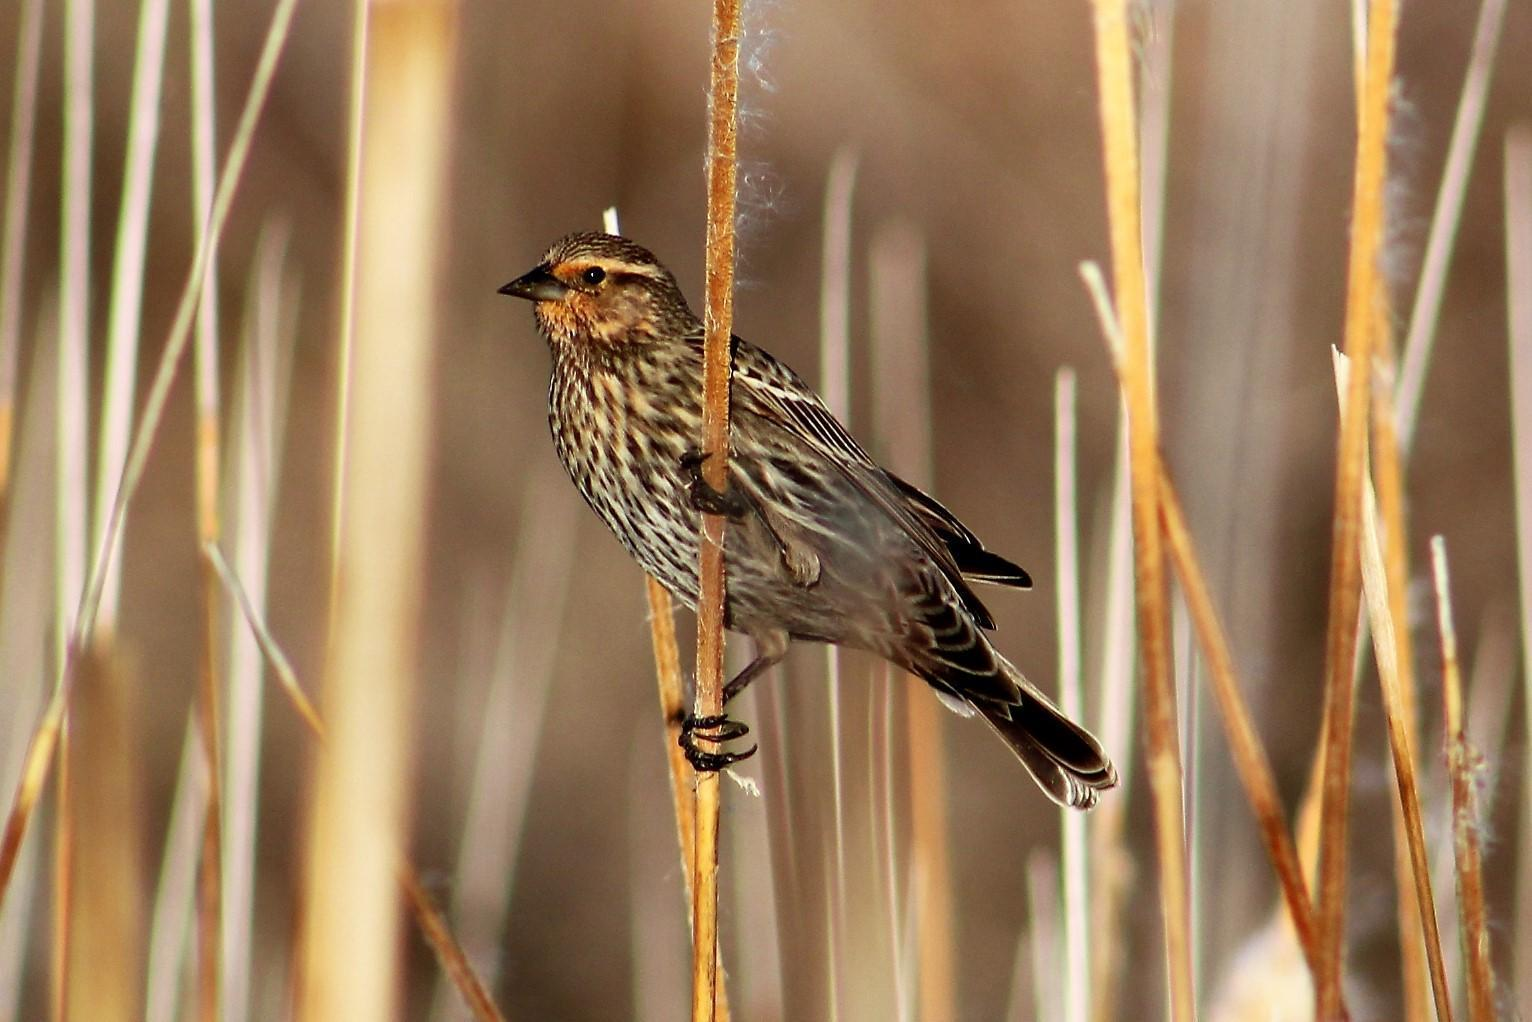 Red-winged Blackbird Photo by Tony Heindel